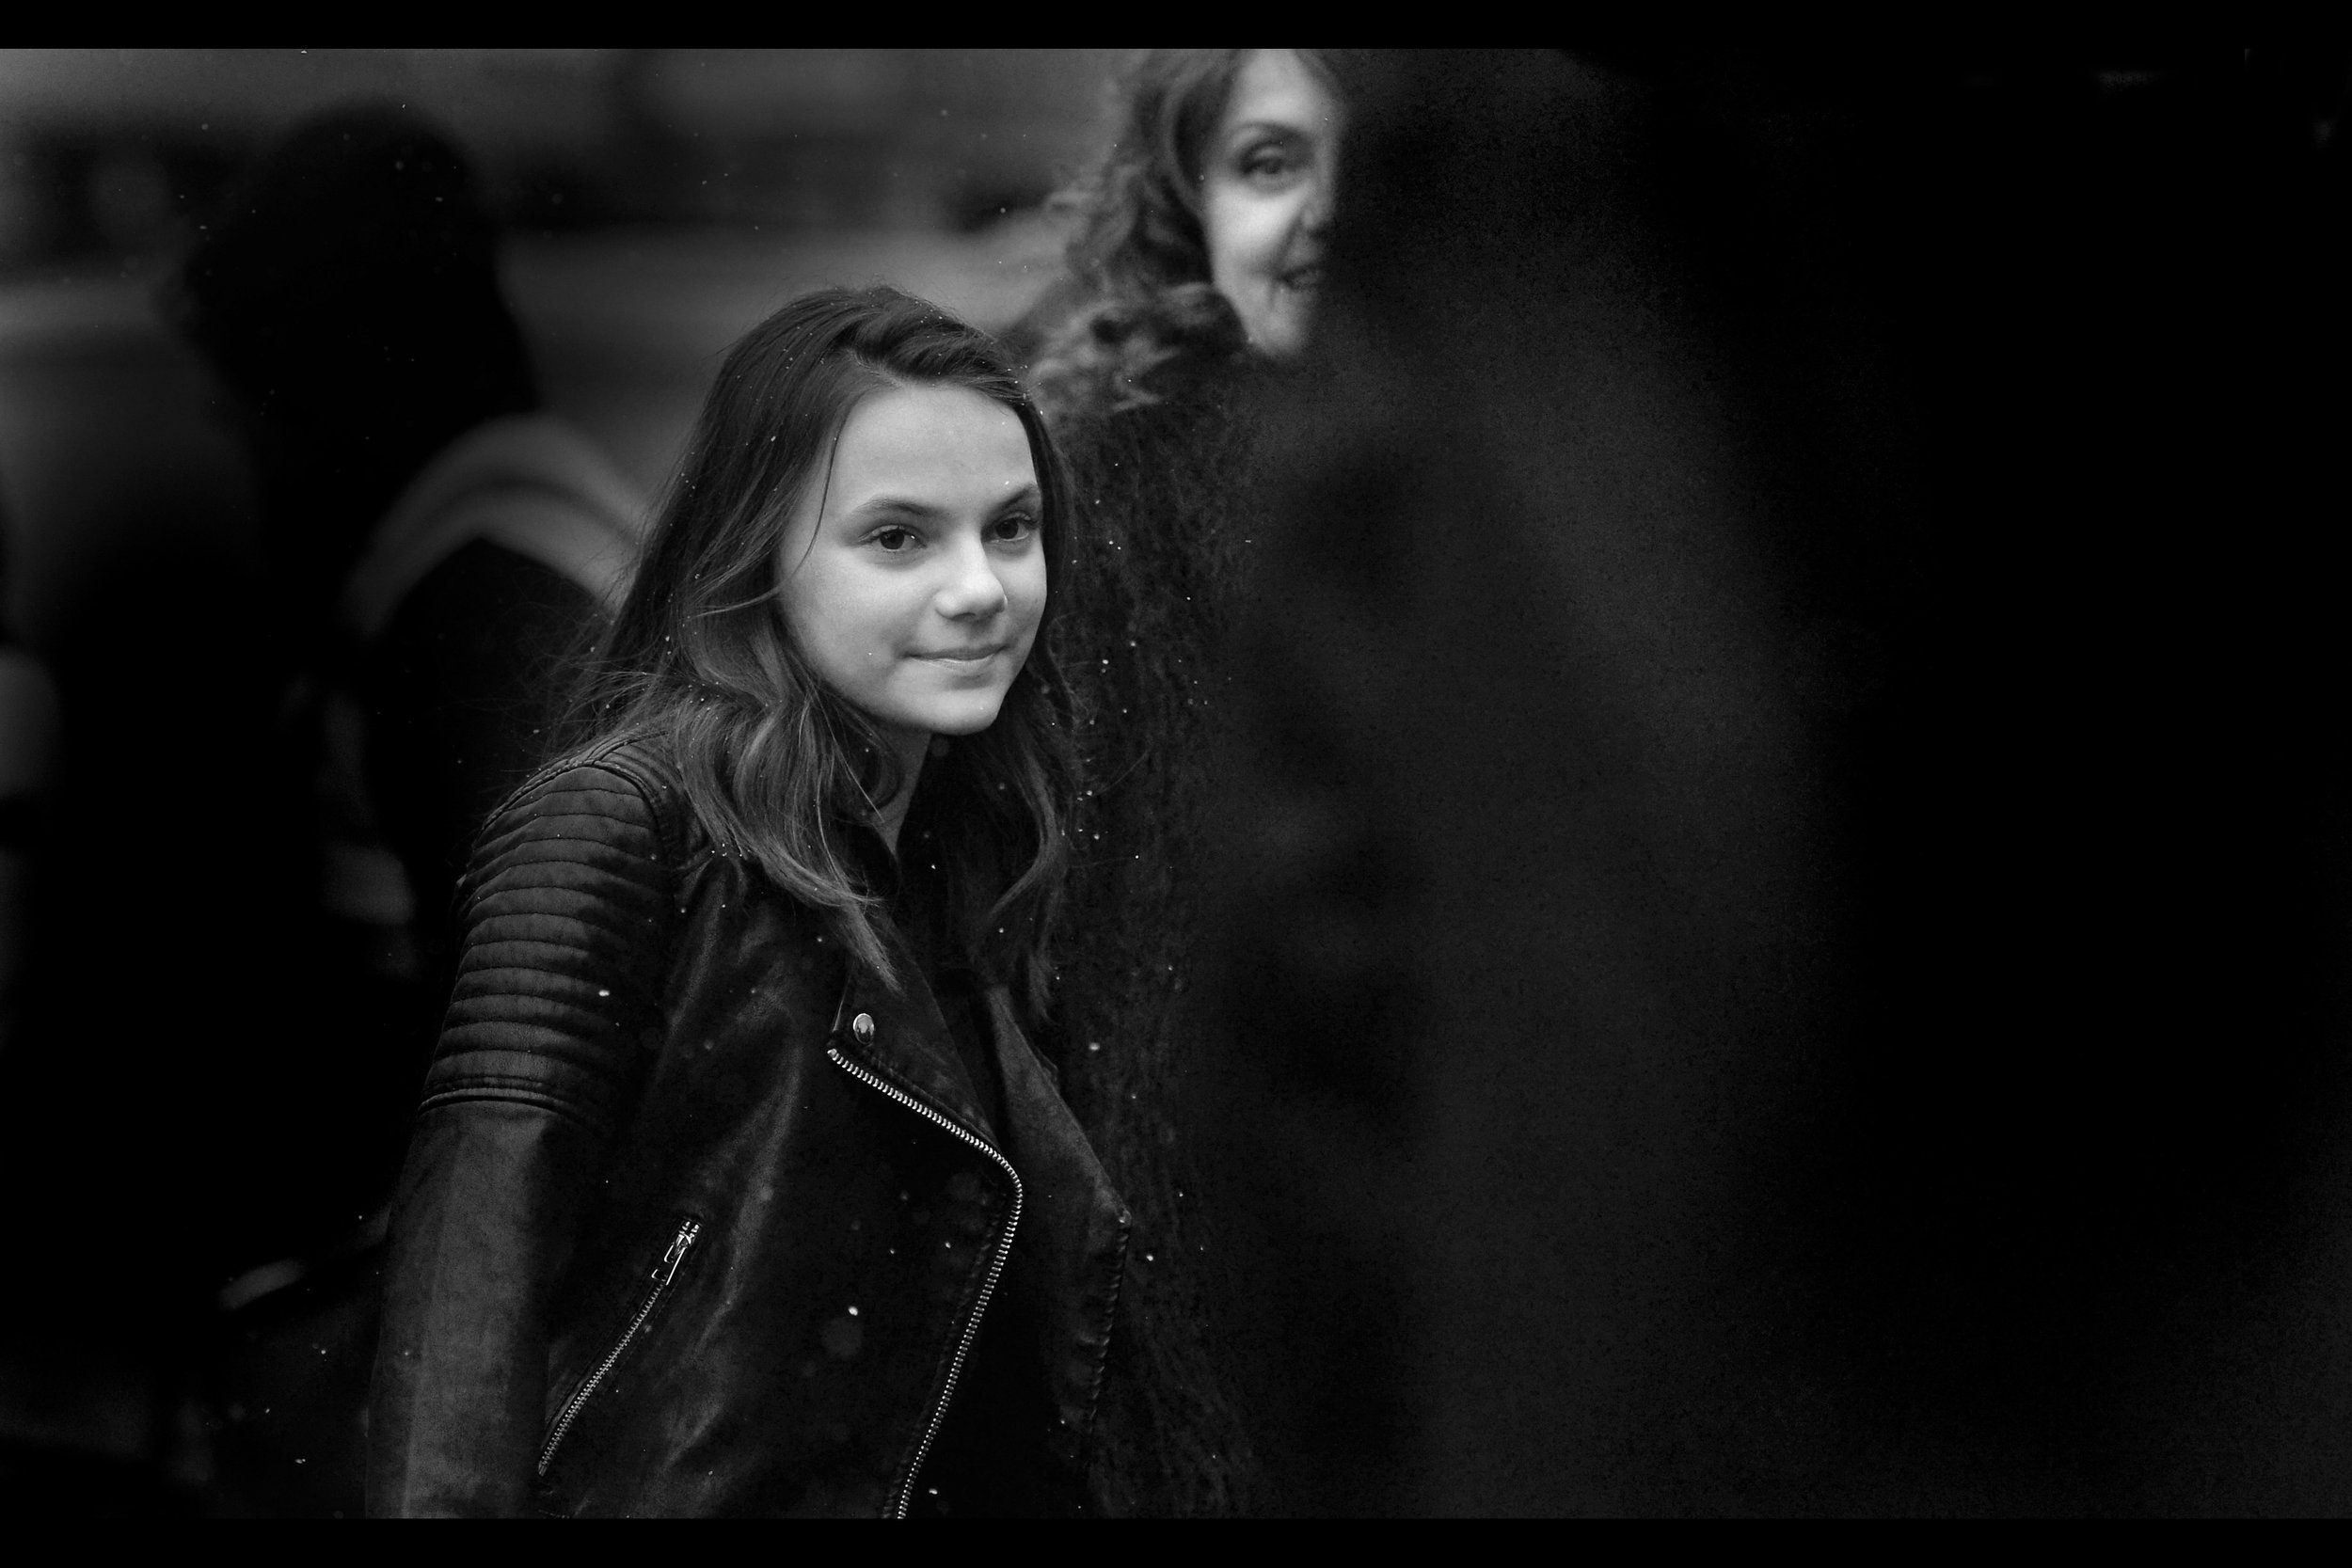 """Our first 'real' arrival is very cool : young Dafne Keen plays Laura/X-23 in the Wolverine movie """"Logan"""", which never had a premiere in London, and also represented a great send-off for a character that never really had a great movie prior to that one."""